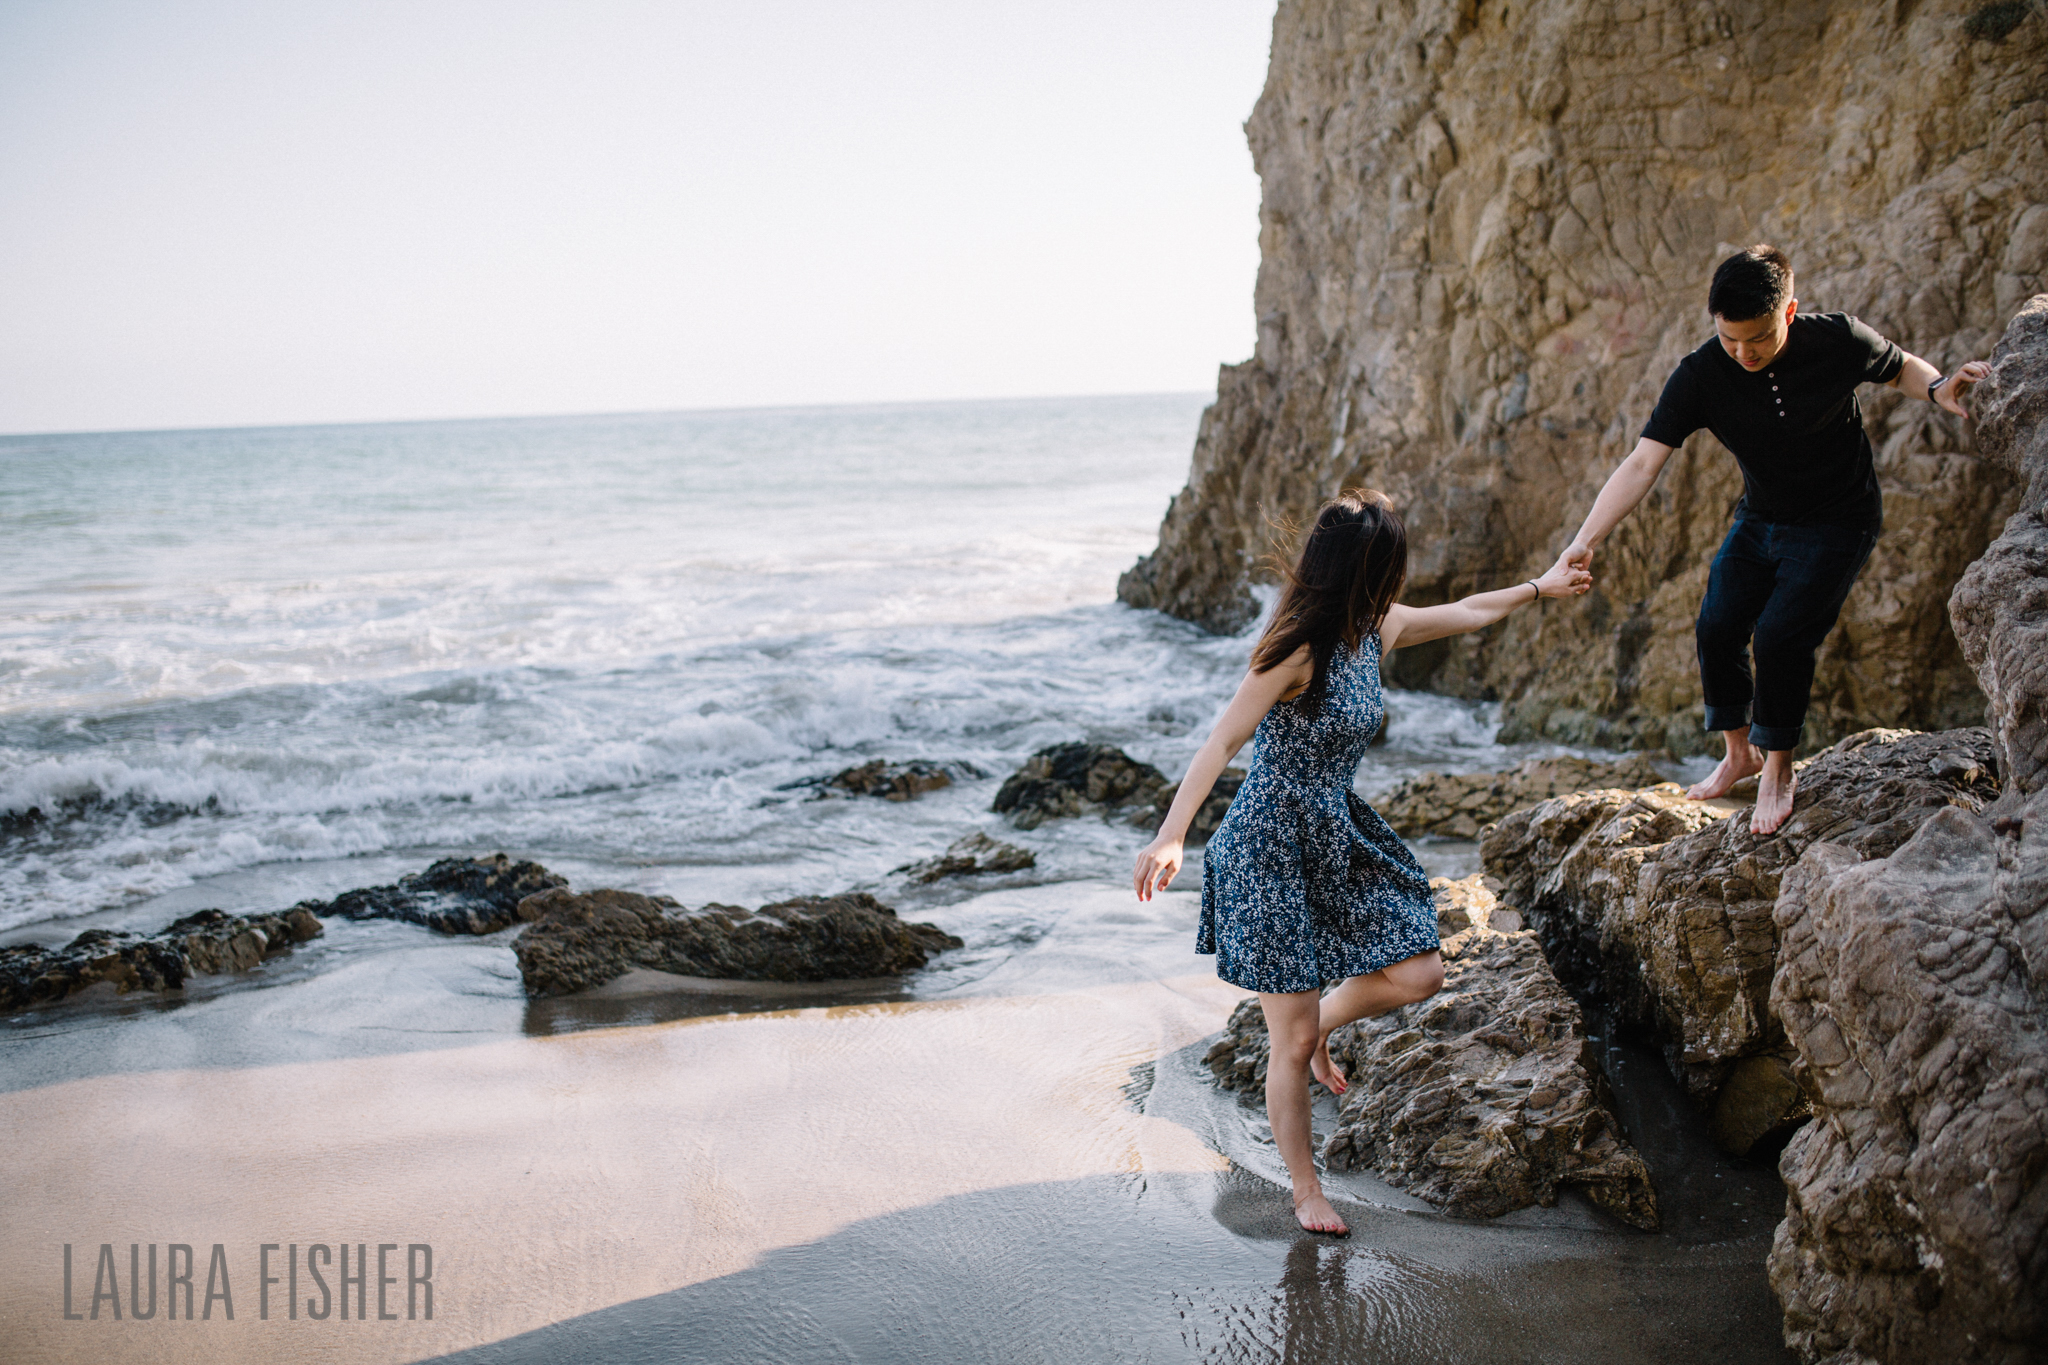 malibu-california-wedding-el-matador-beach-laura-fisher-photography-0008.jpg